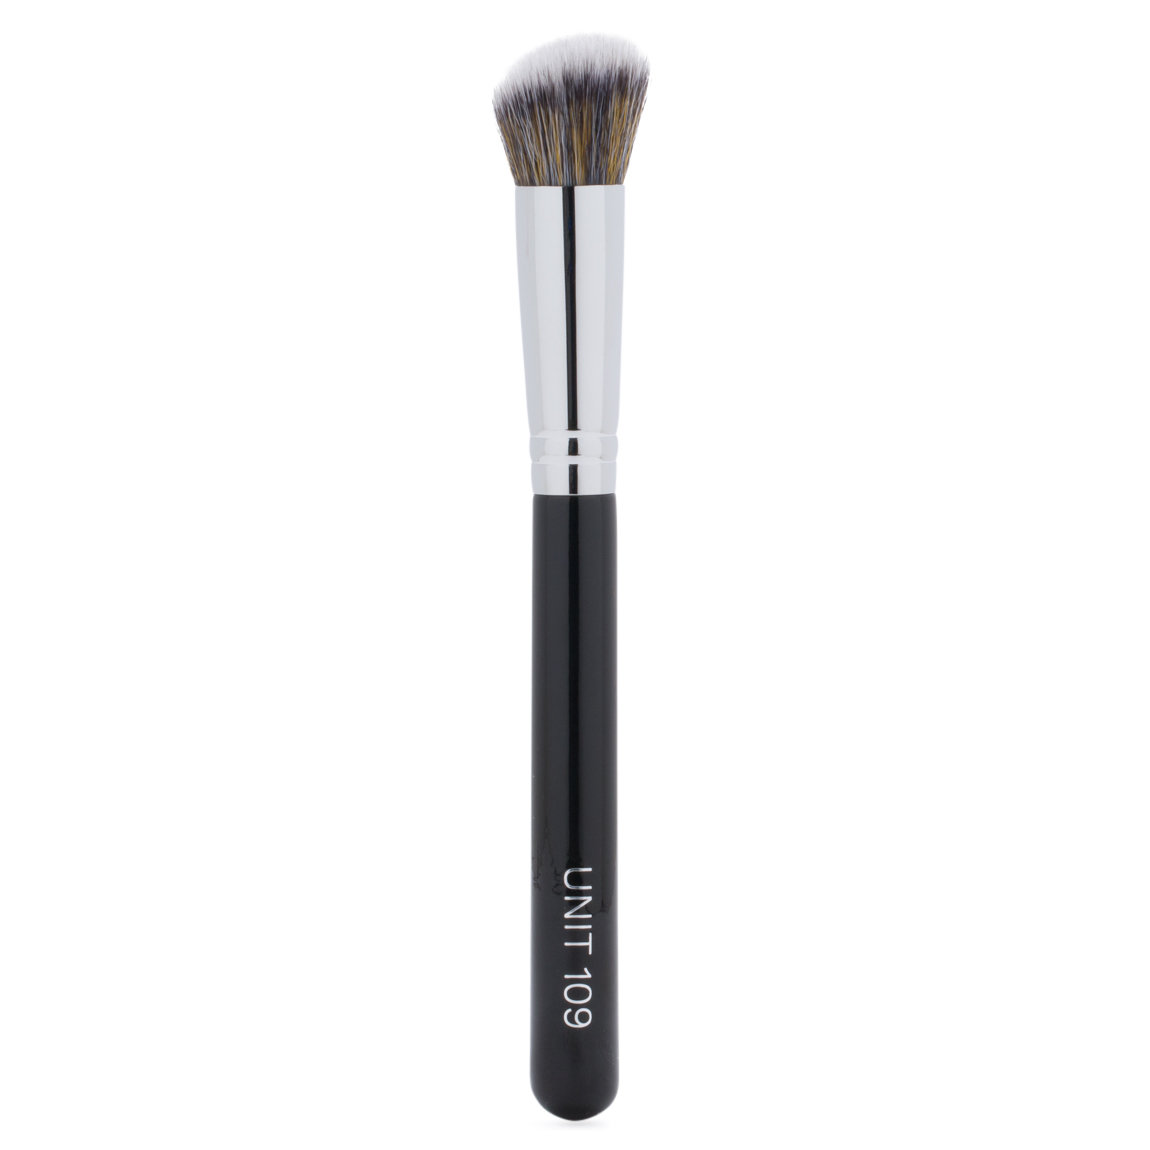 UNIT 109 Cheek Brush